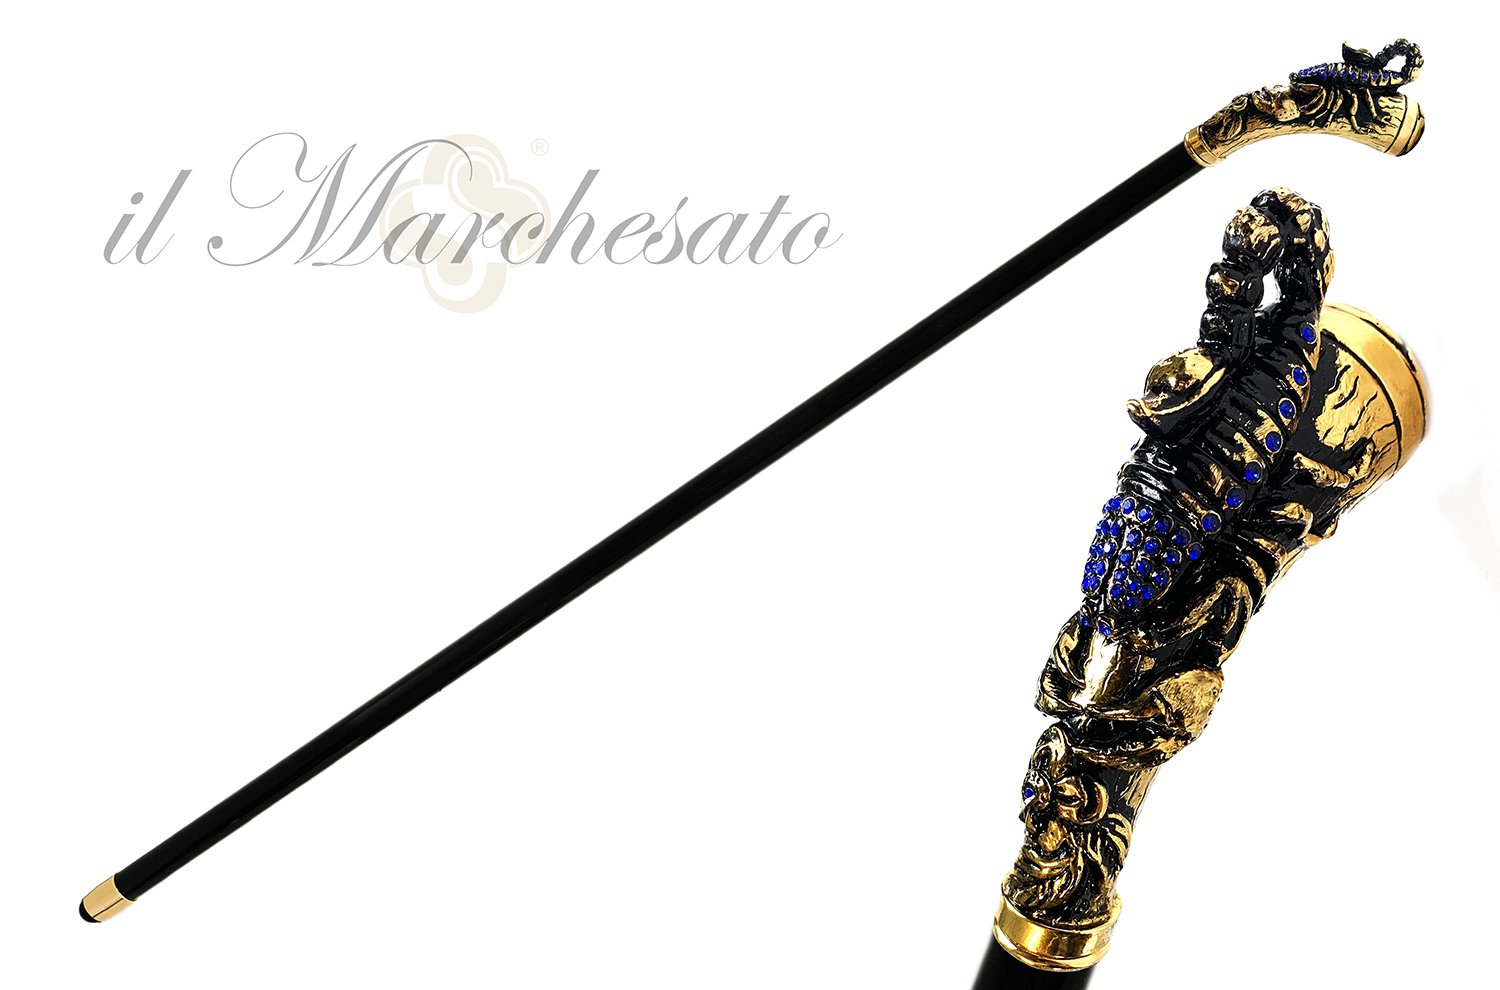 Original Scorpion Handle with Sapphire crystals - IL MARCHESATO LUXURY UMBRELLAS, CANES AND SHOEHORNS